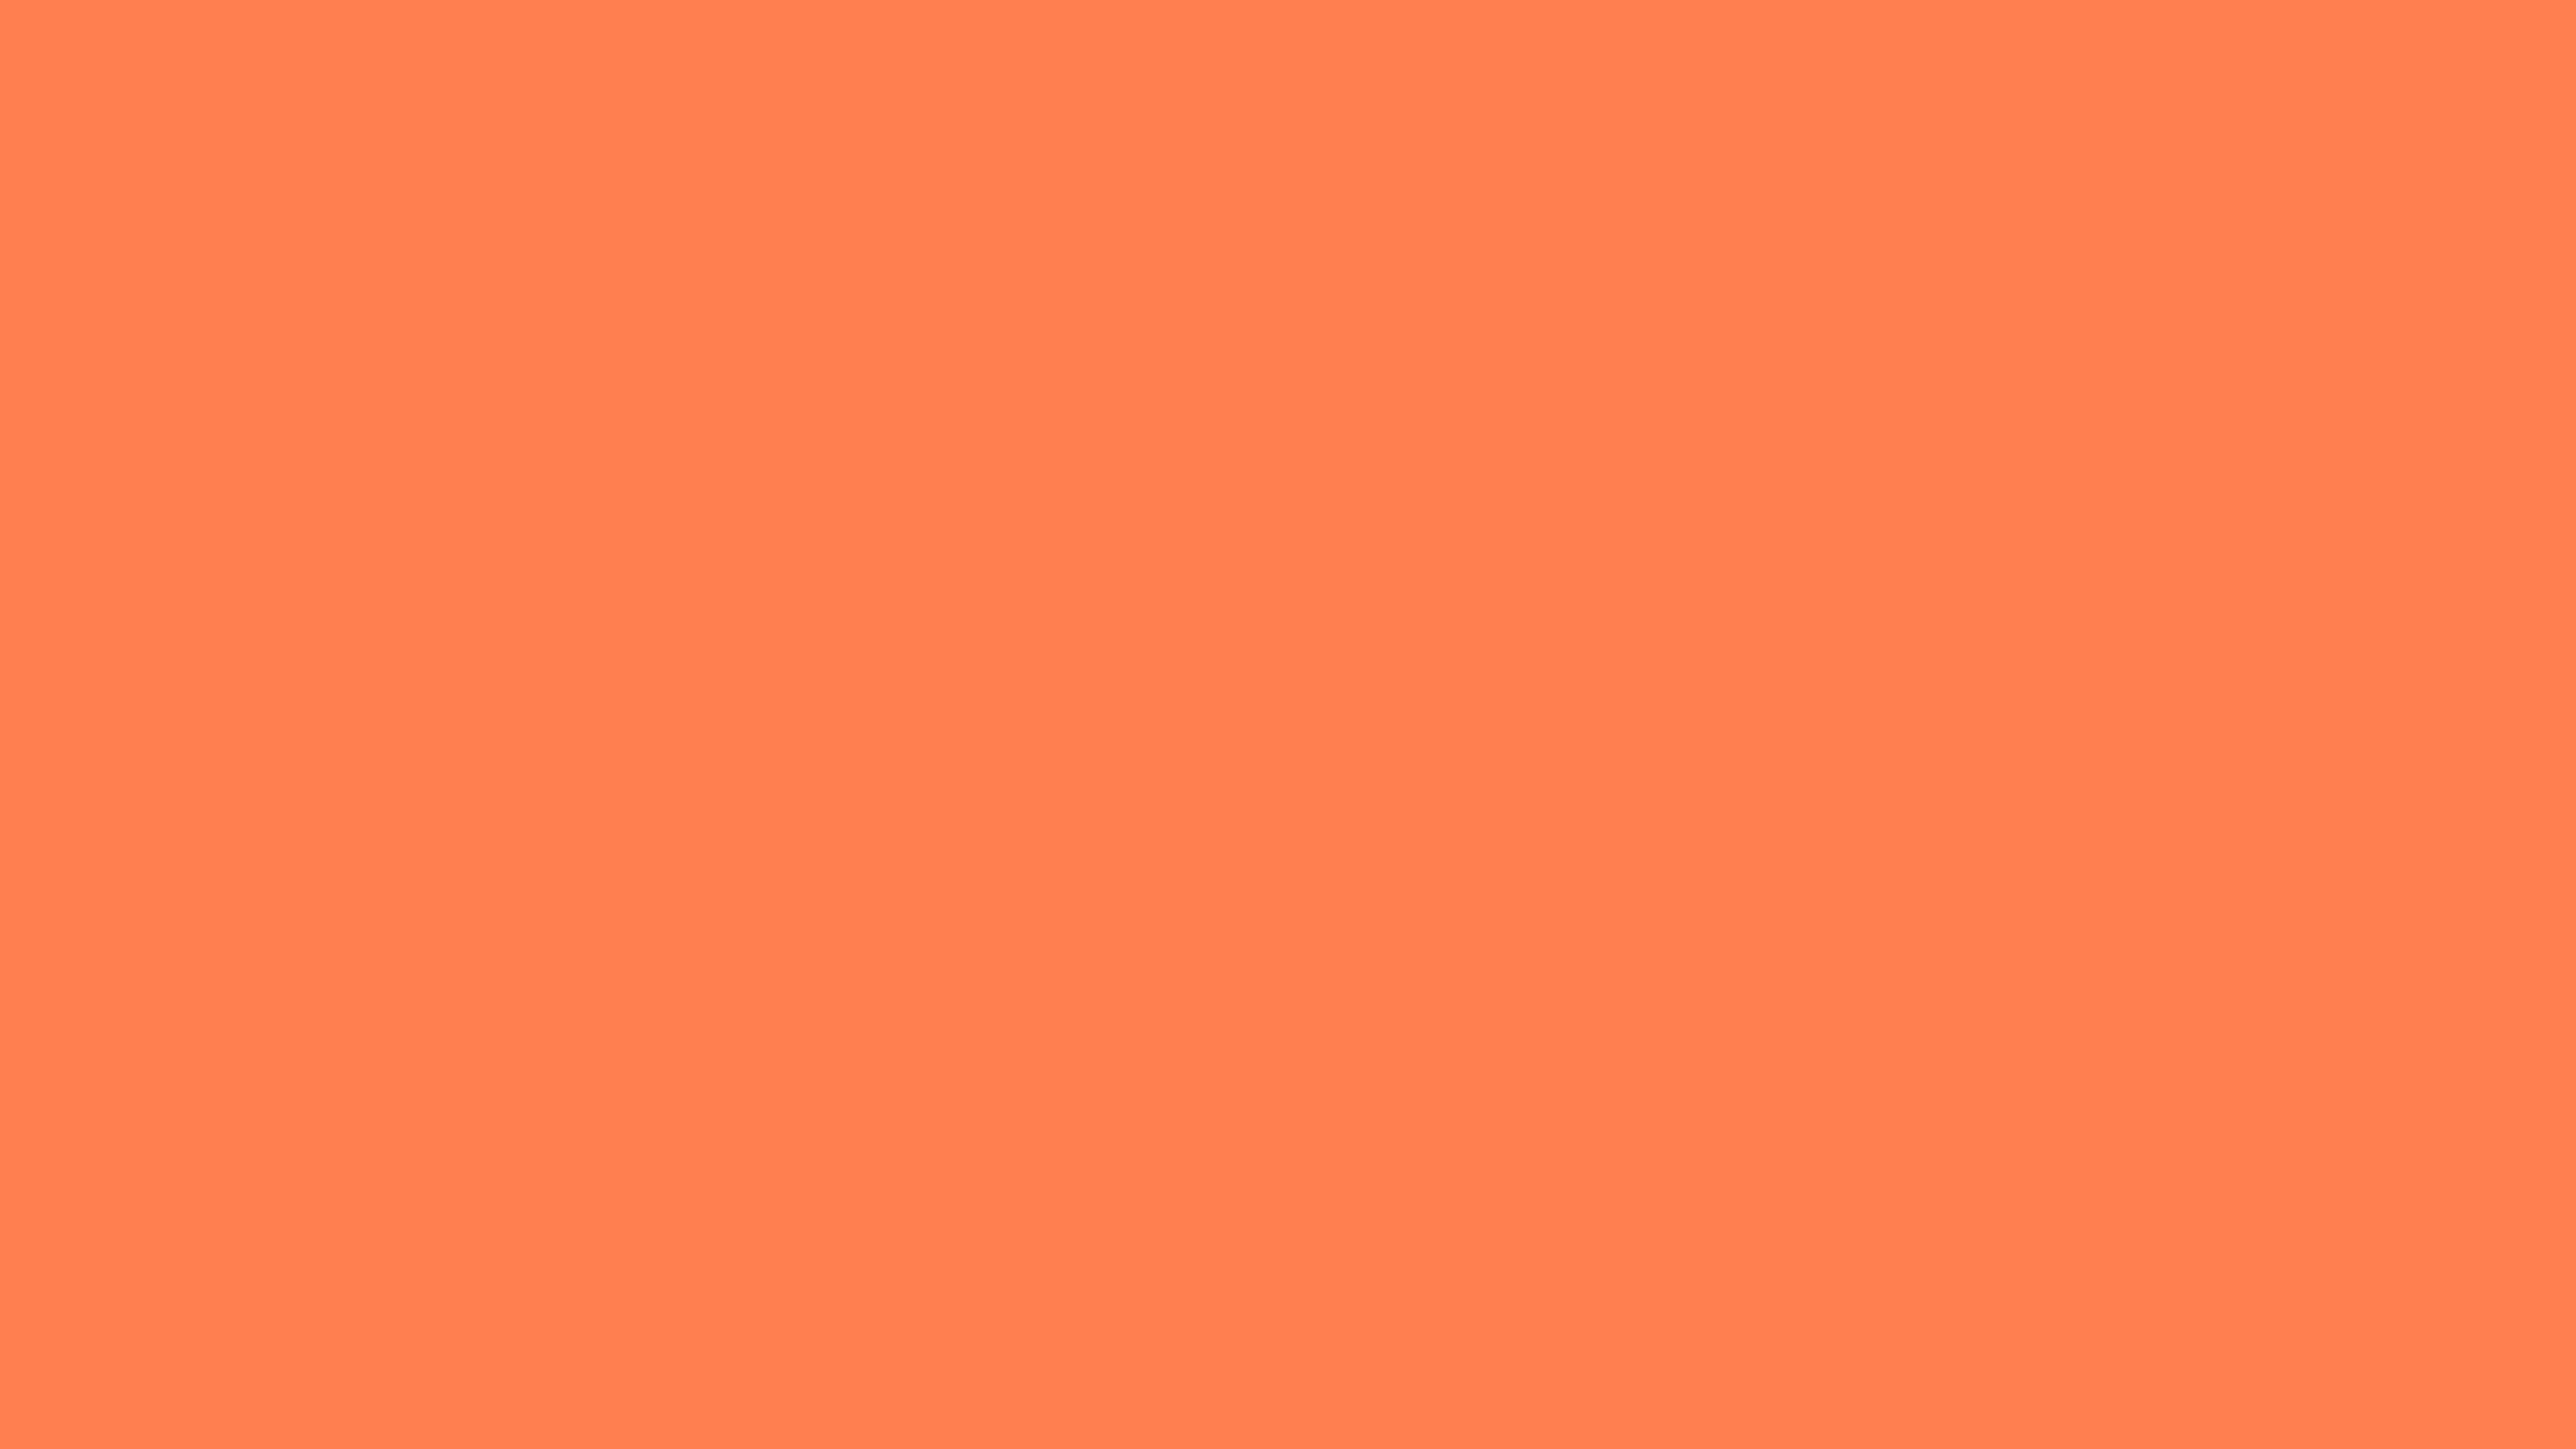 4096x2304 Coral Solid Color Background